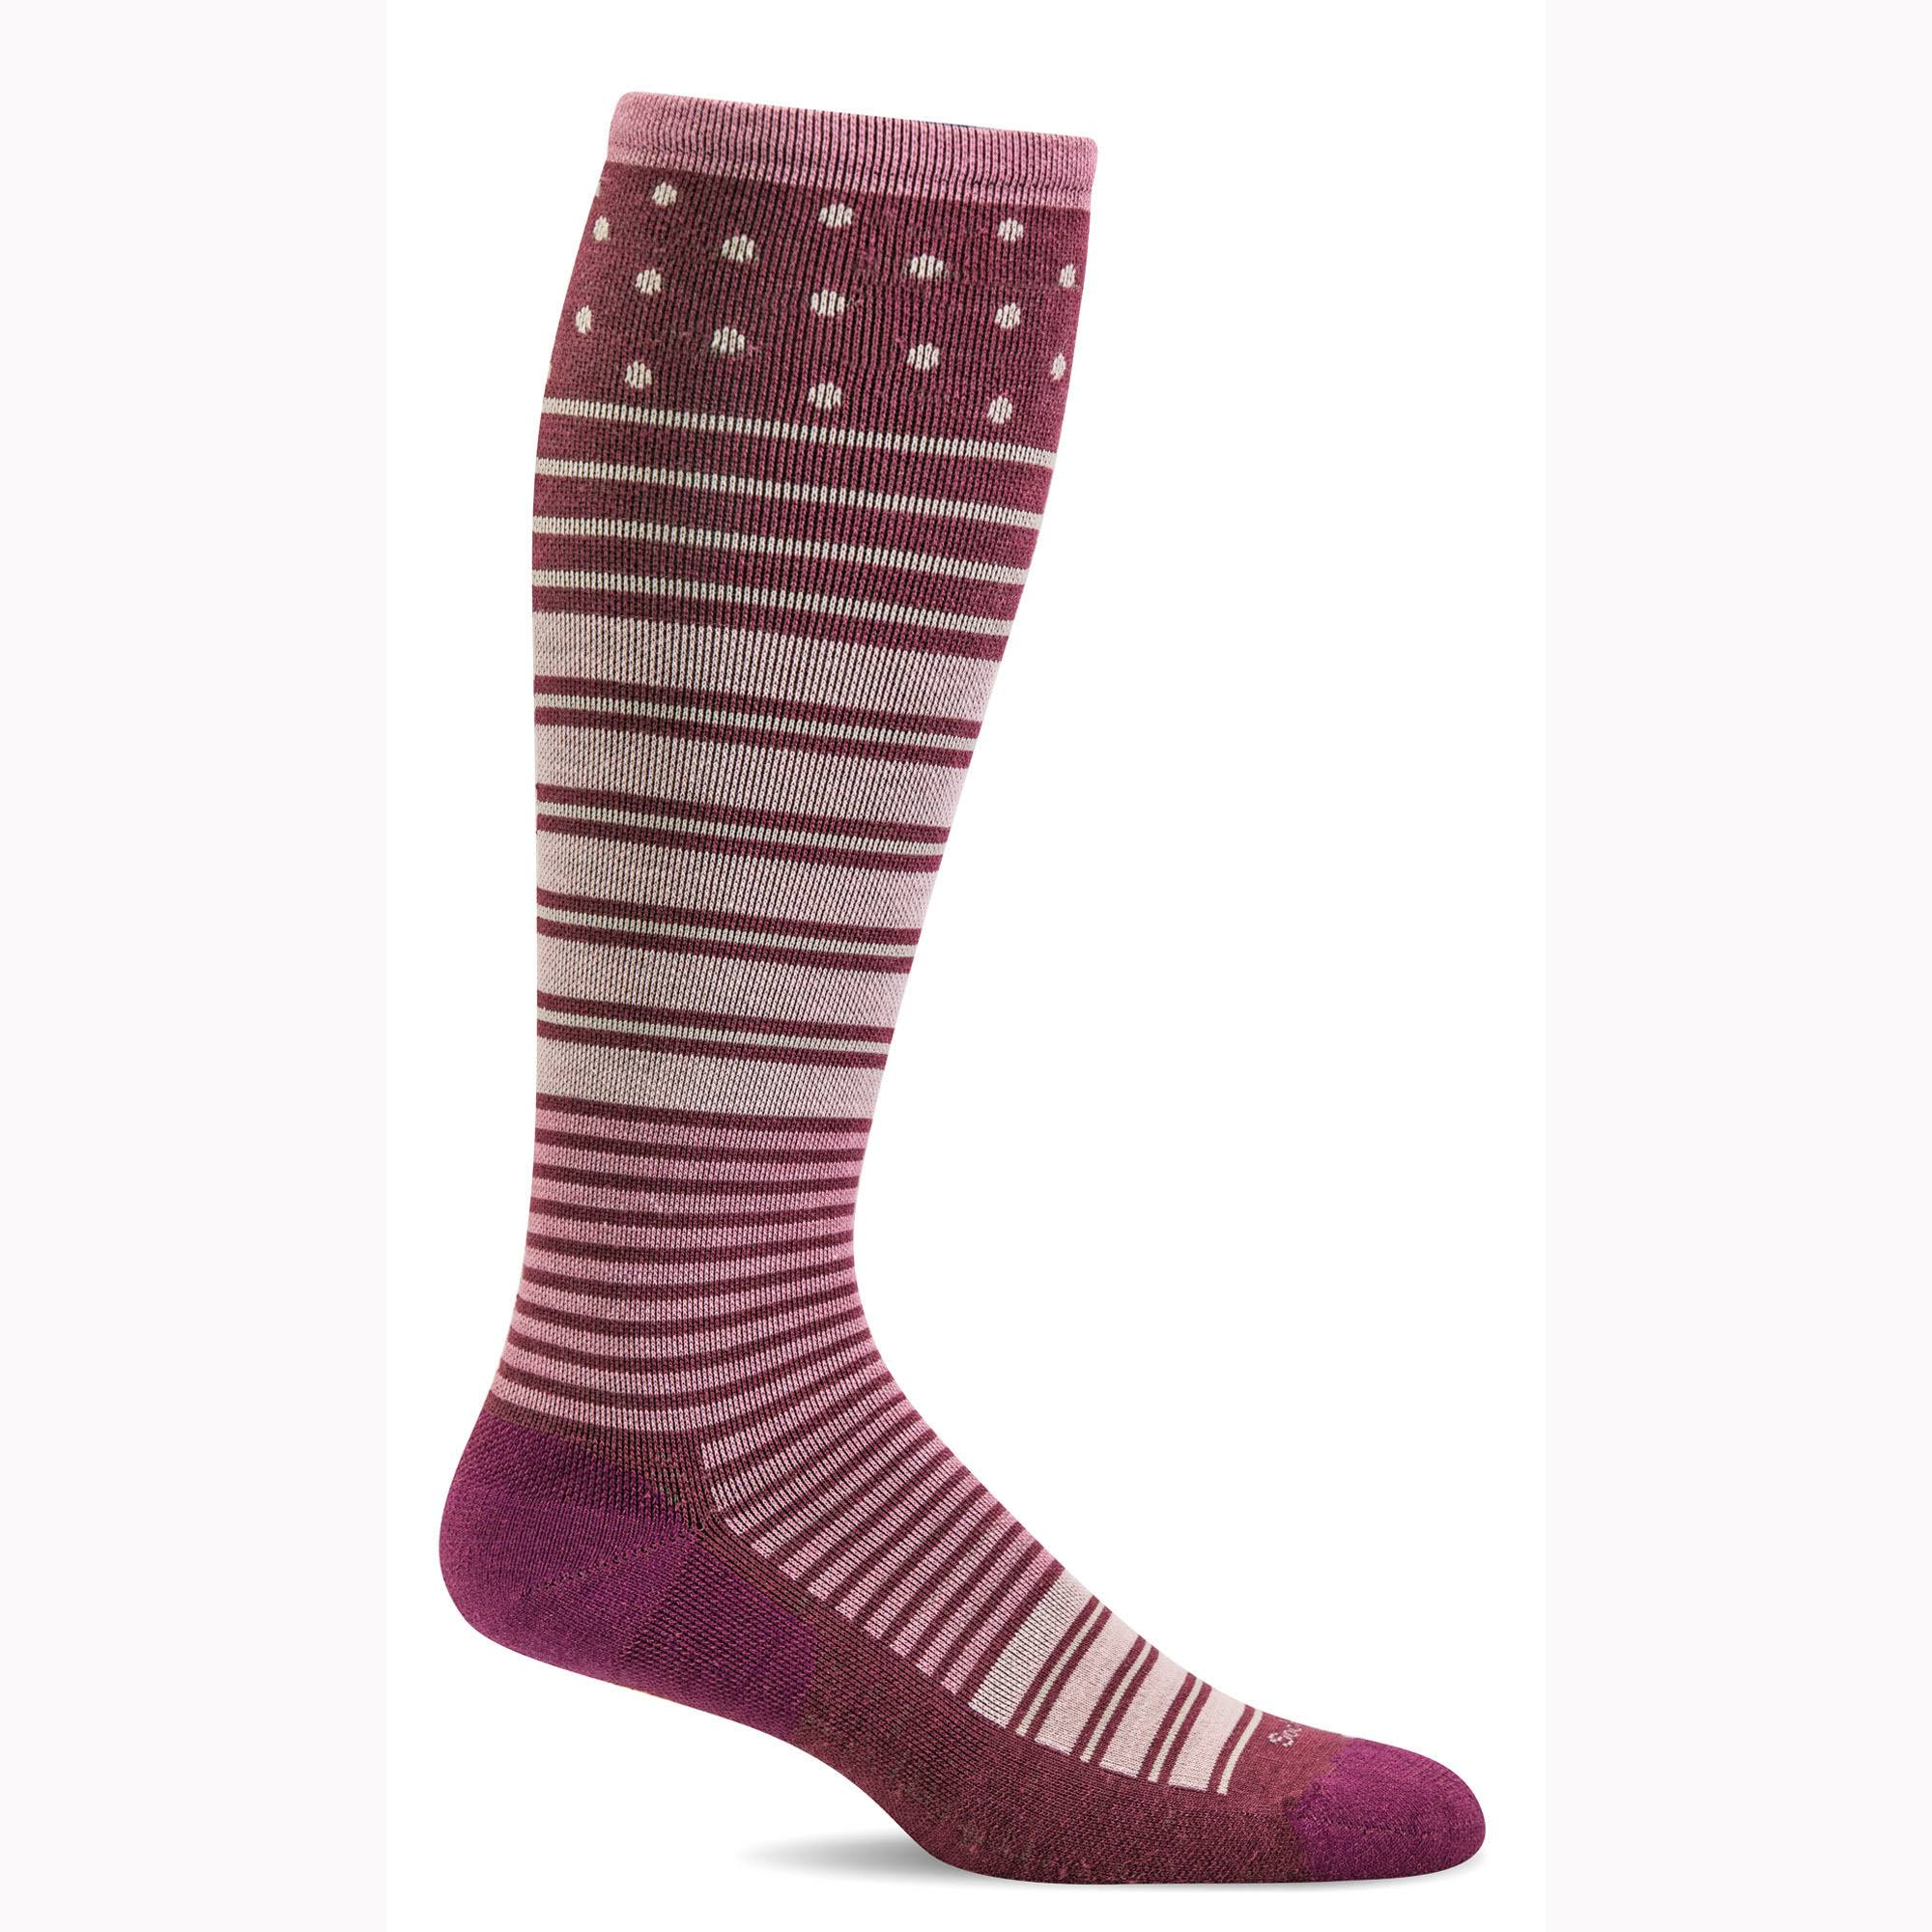 Sockwell Women's Twister Firm Compression Socks S/M / Mulberry